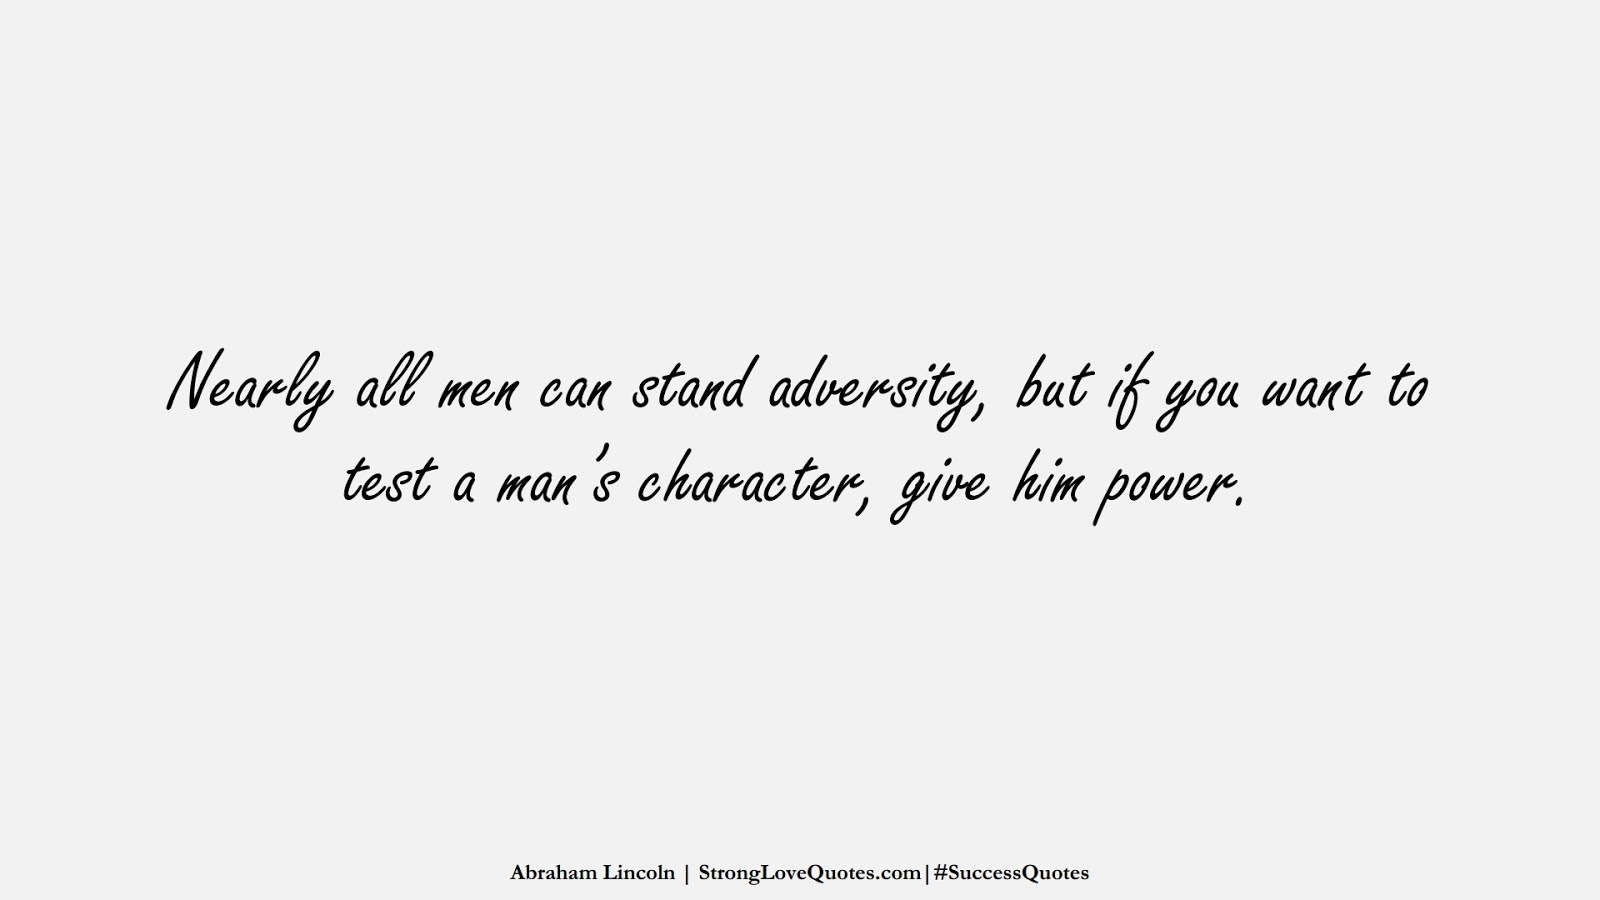 Nearly all men can stand adversity, but if you want to test a man's character, give him power. (Abraham Lincoln);  #SuccessQuotes